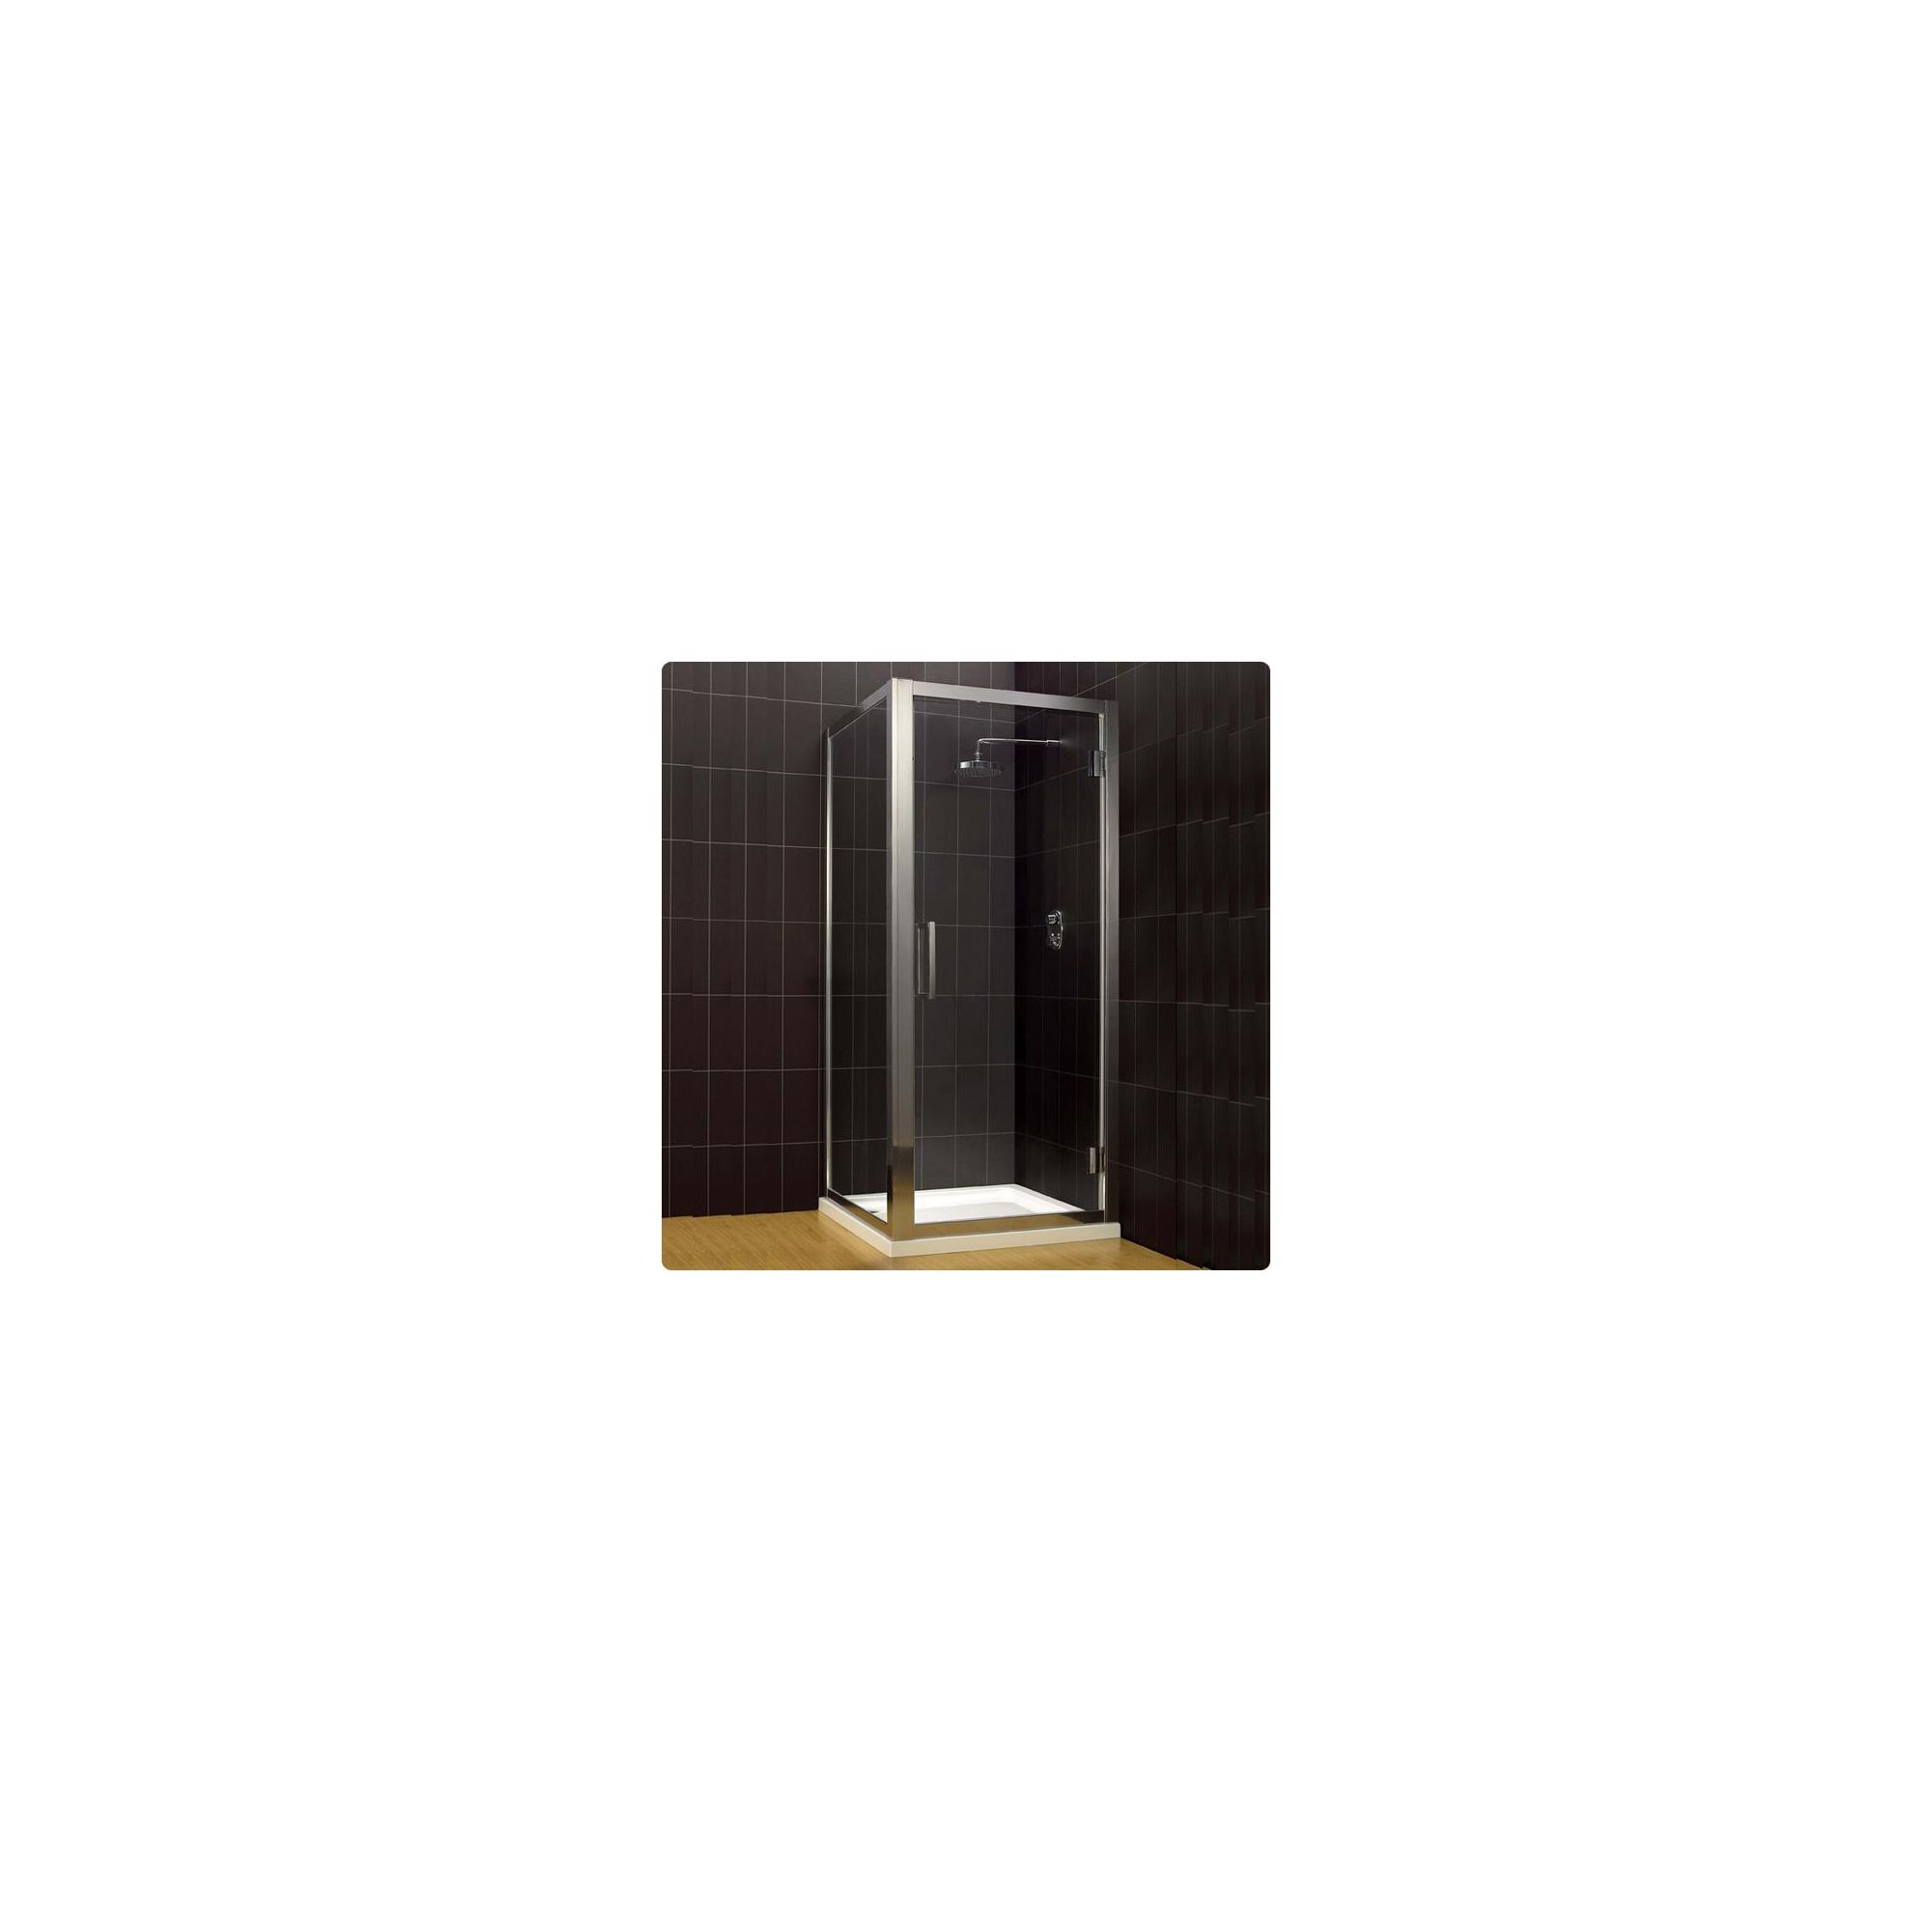 Duchy Supreme Silver Hinged Door Shower Enclosure with Towel Rail, 1000mm x 760mm, Standard Tray, 8mm Glass at Tesco Direct